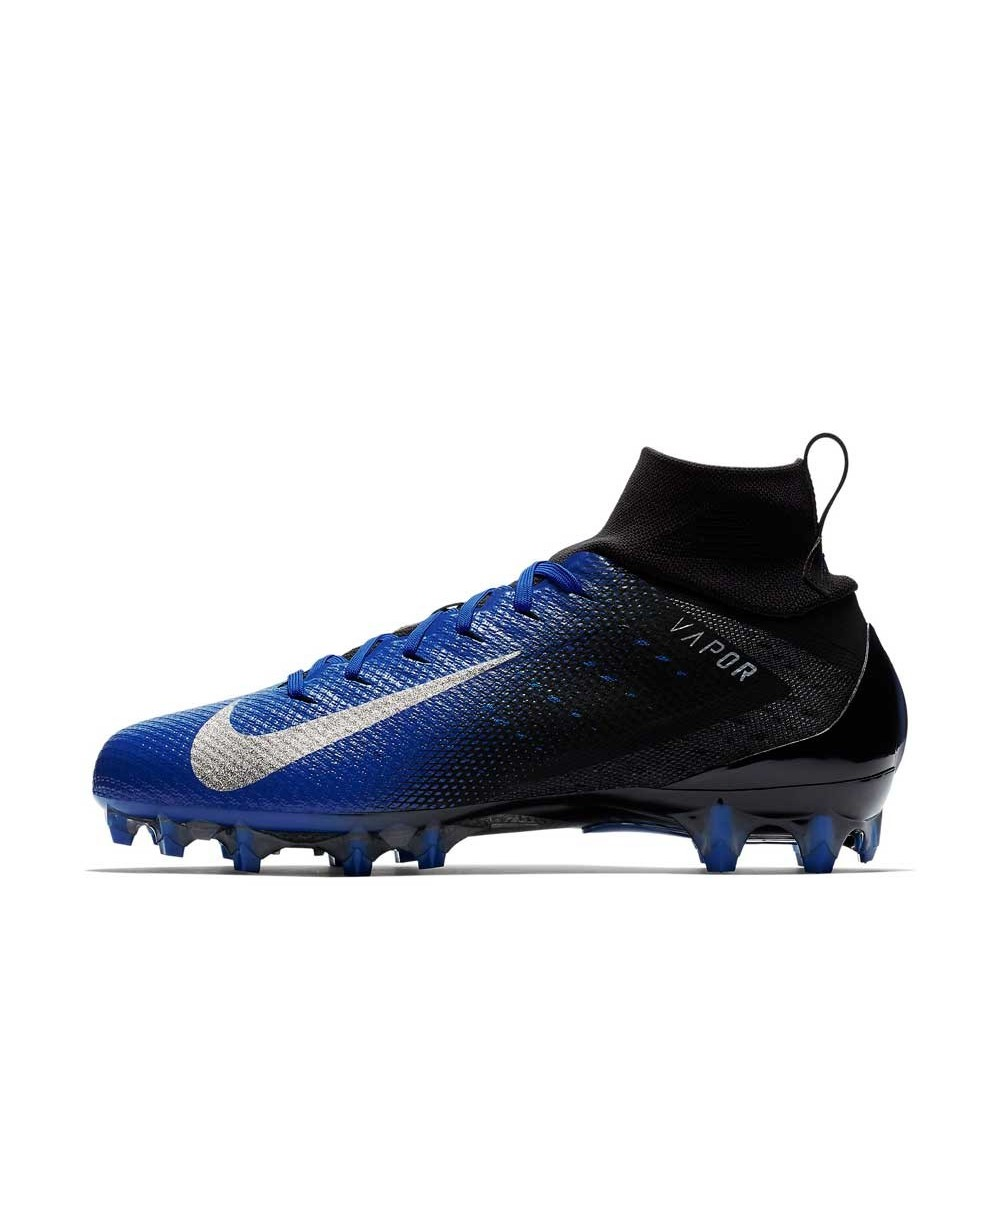 99a1aab0b1c5f3 Nike Men s Vapor Untouchable 3 Pro American Football Cleats Game Royal